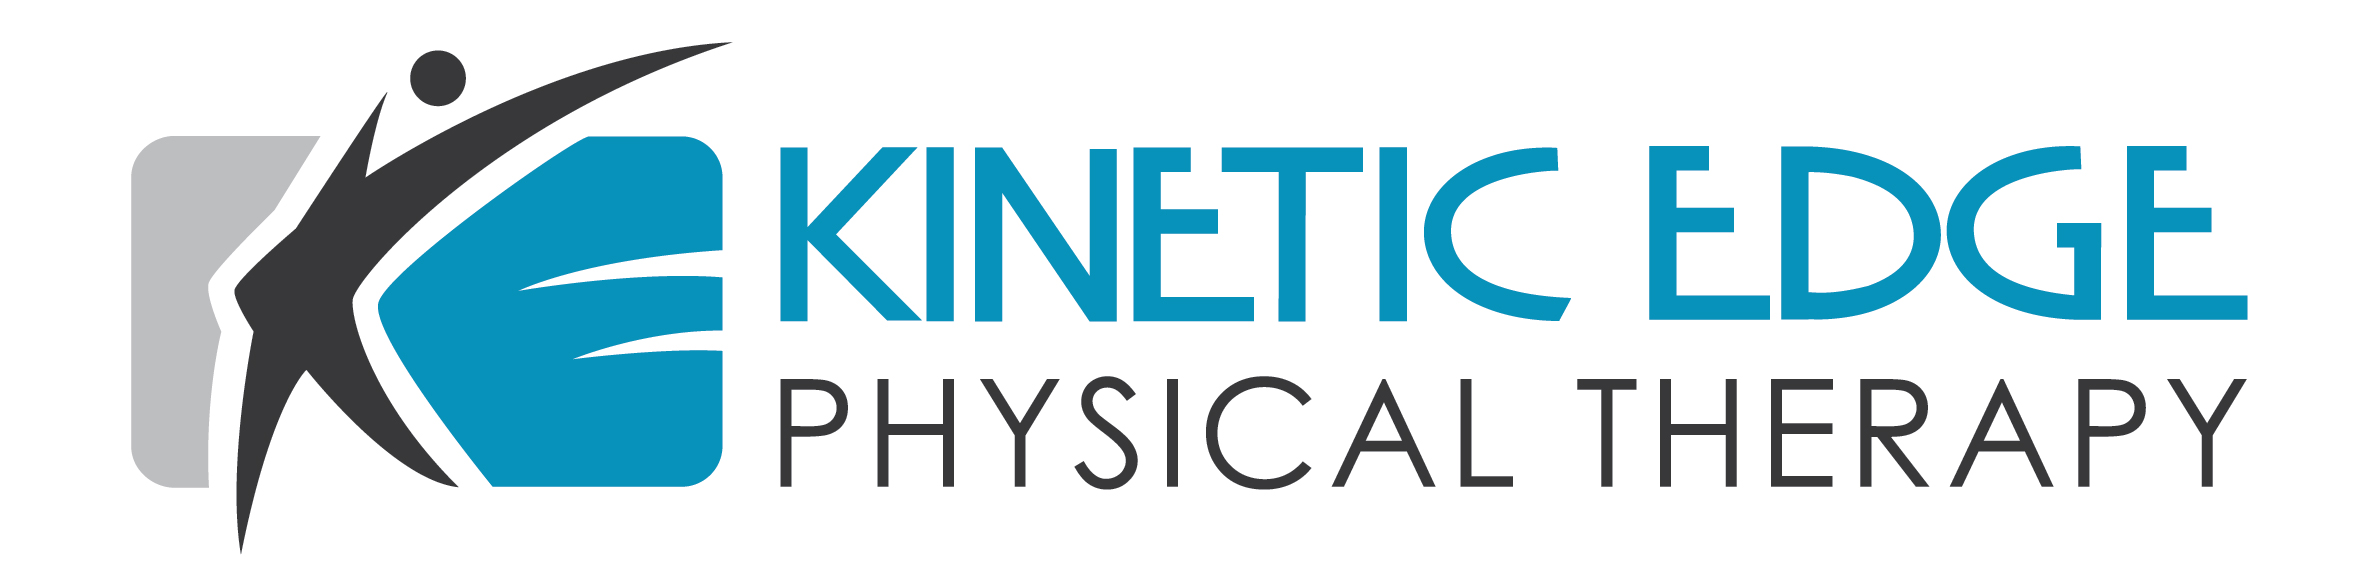 Kinetic Edge Physical Therapy- office assistant needed